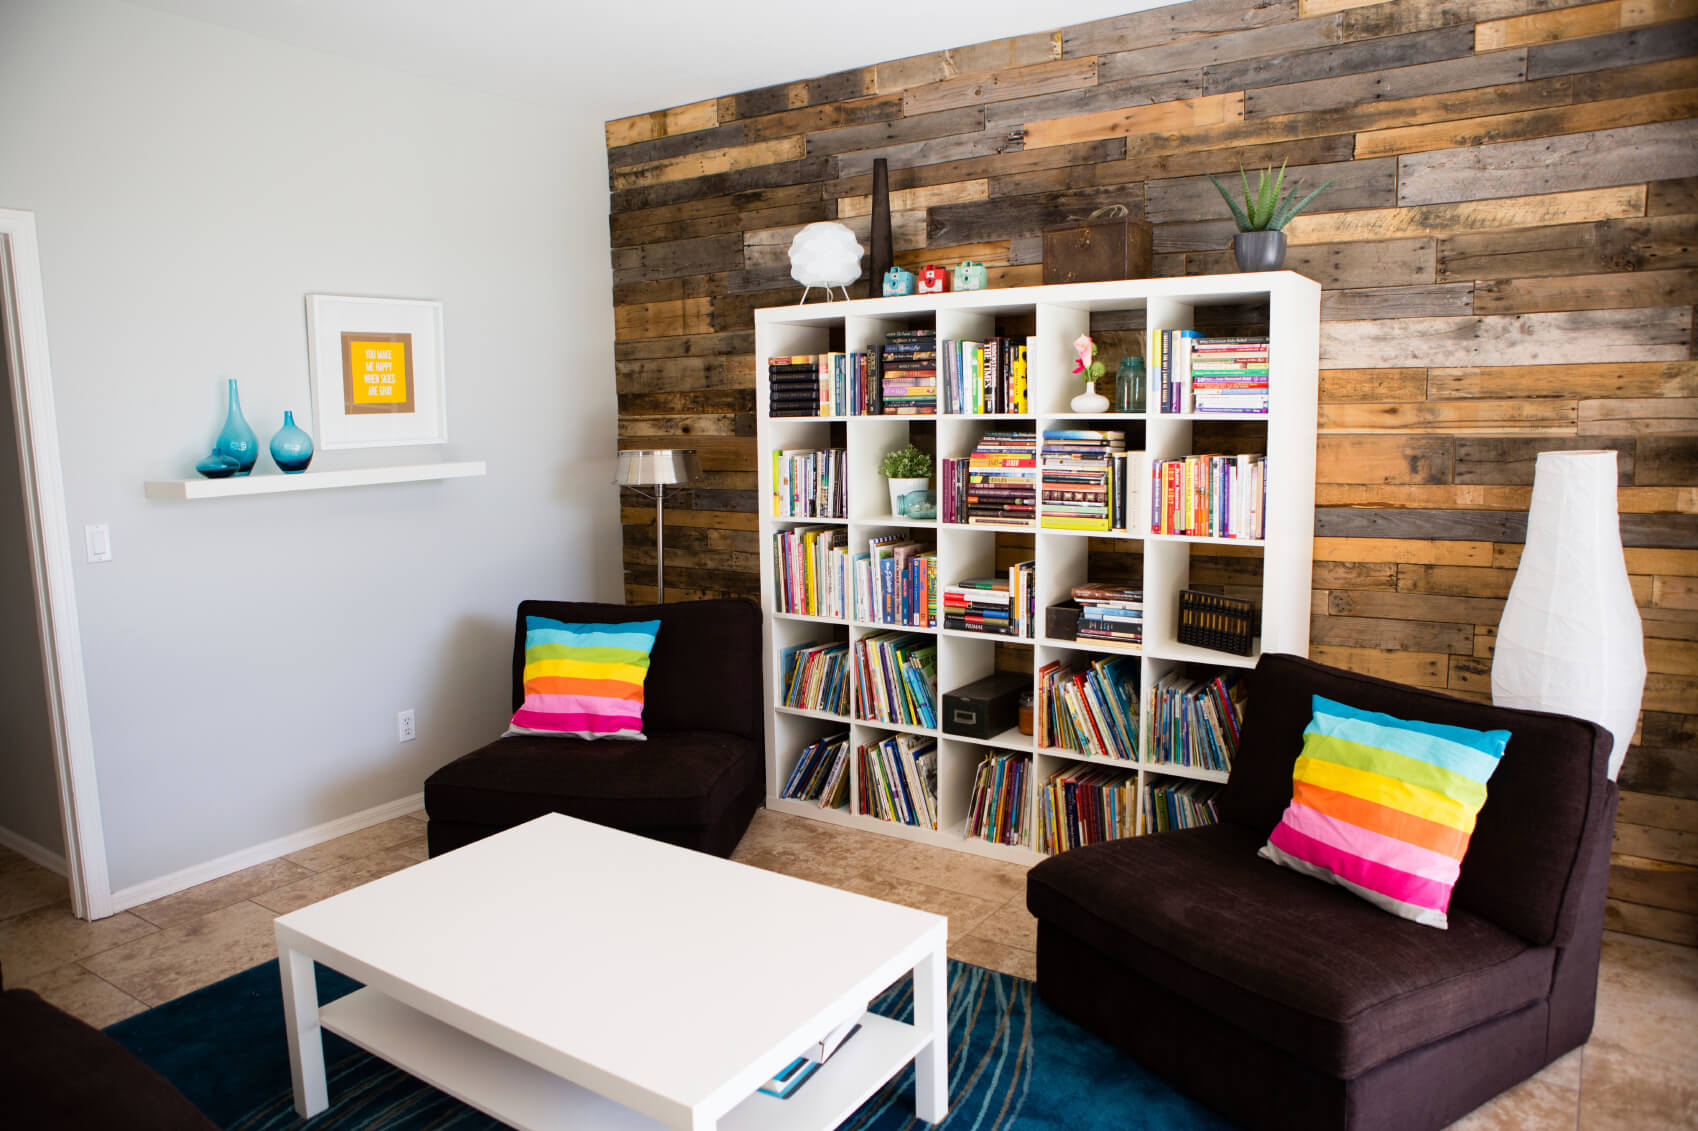 21 Neat and Tidy Living Room Storage Ideas